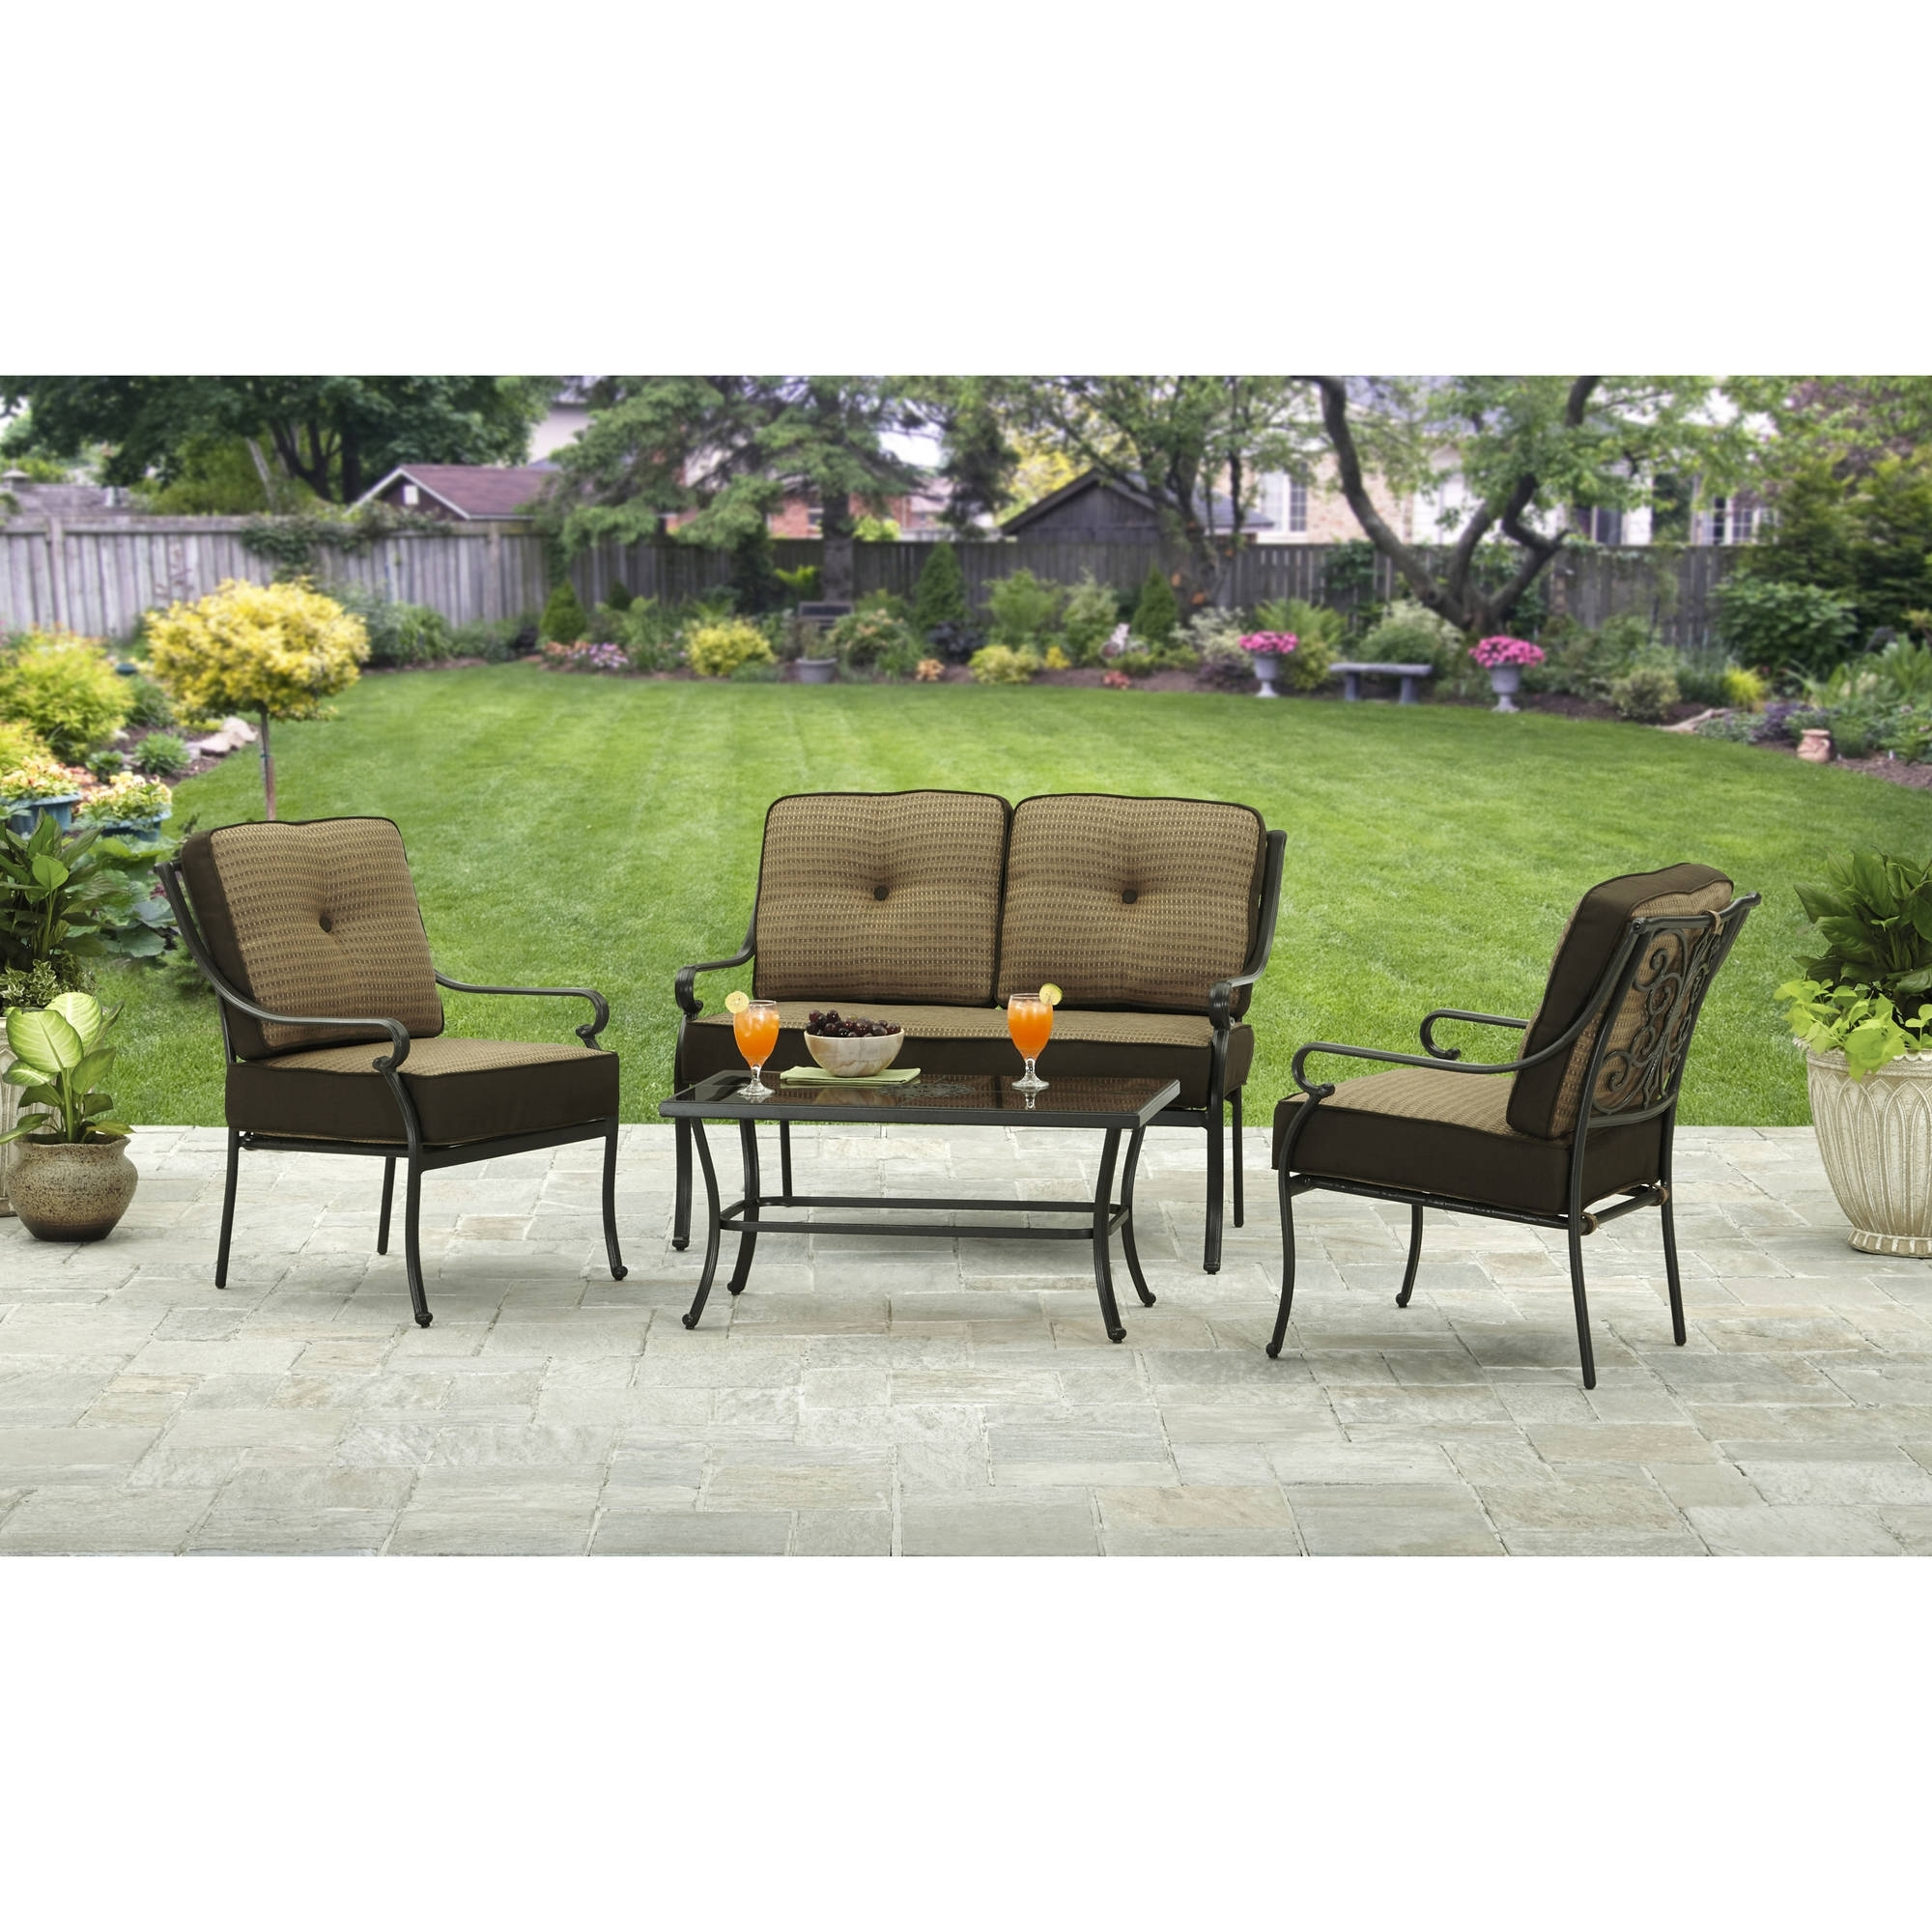 4 Piece Patio Conversation Sets in Preferred Better Homes And Gardens Bailey Ridge 4 Piece Outdoor Conversation